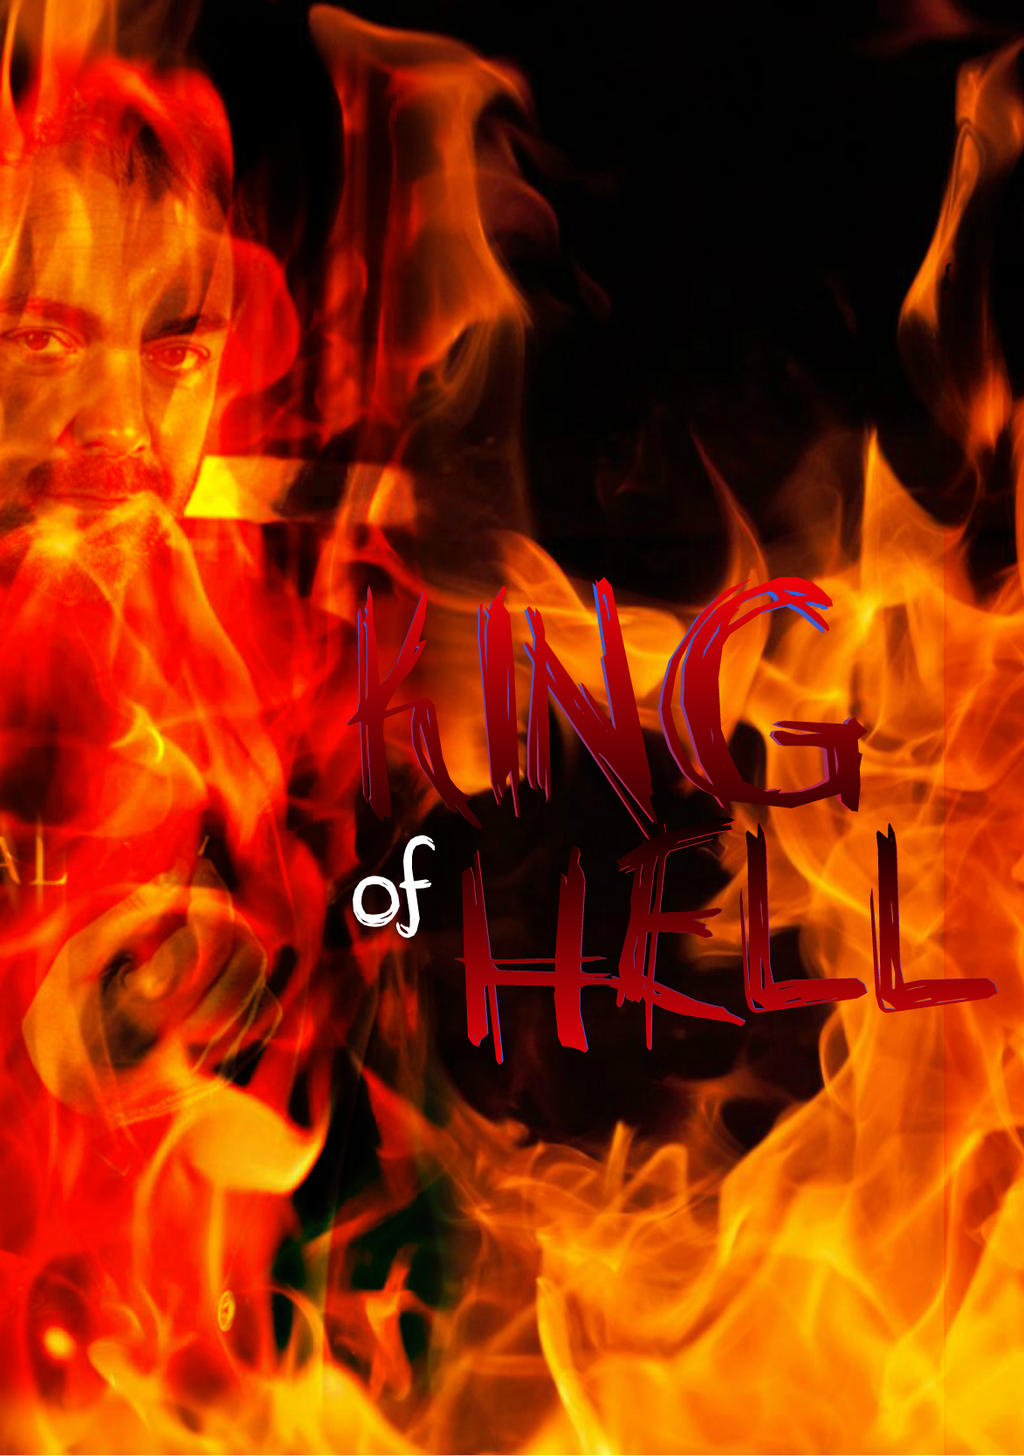 King Of Hell 3 by maleficent-angel